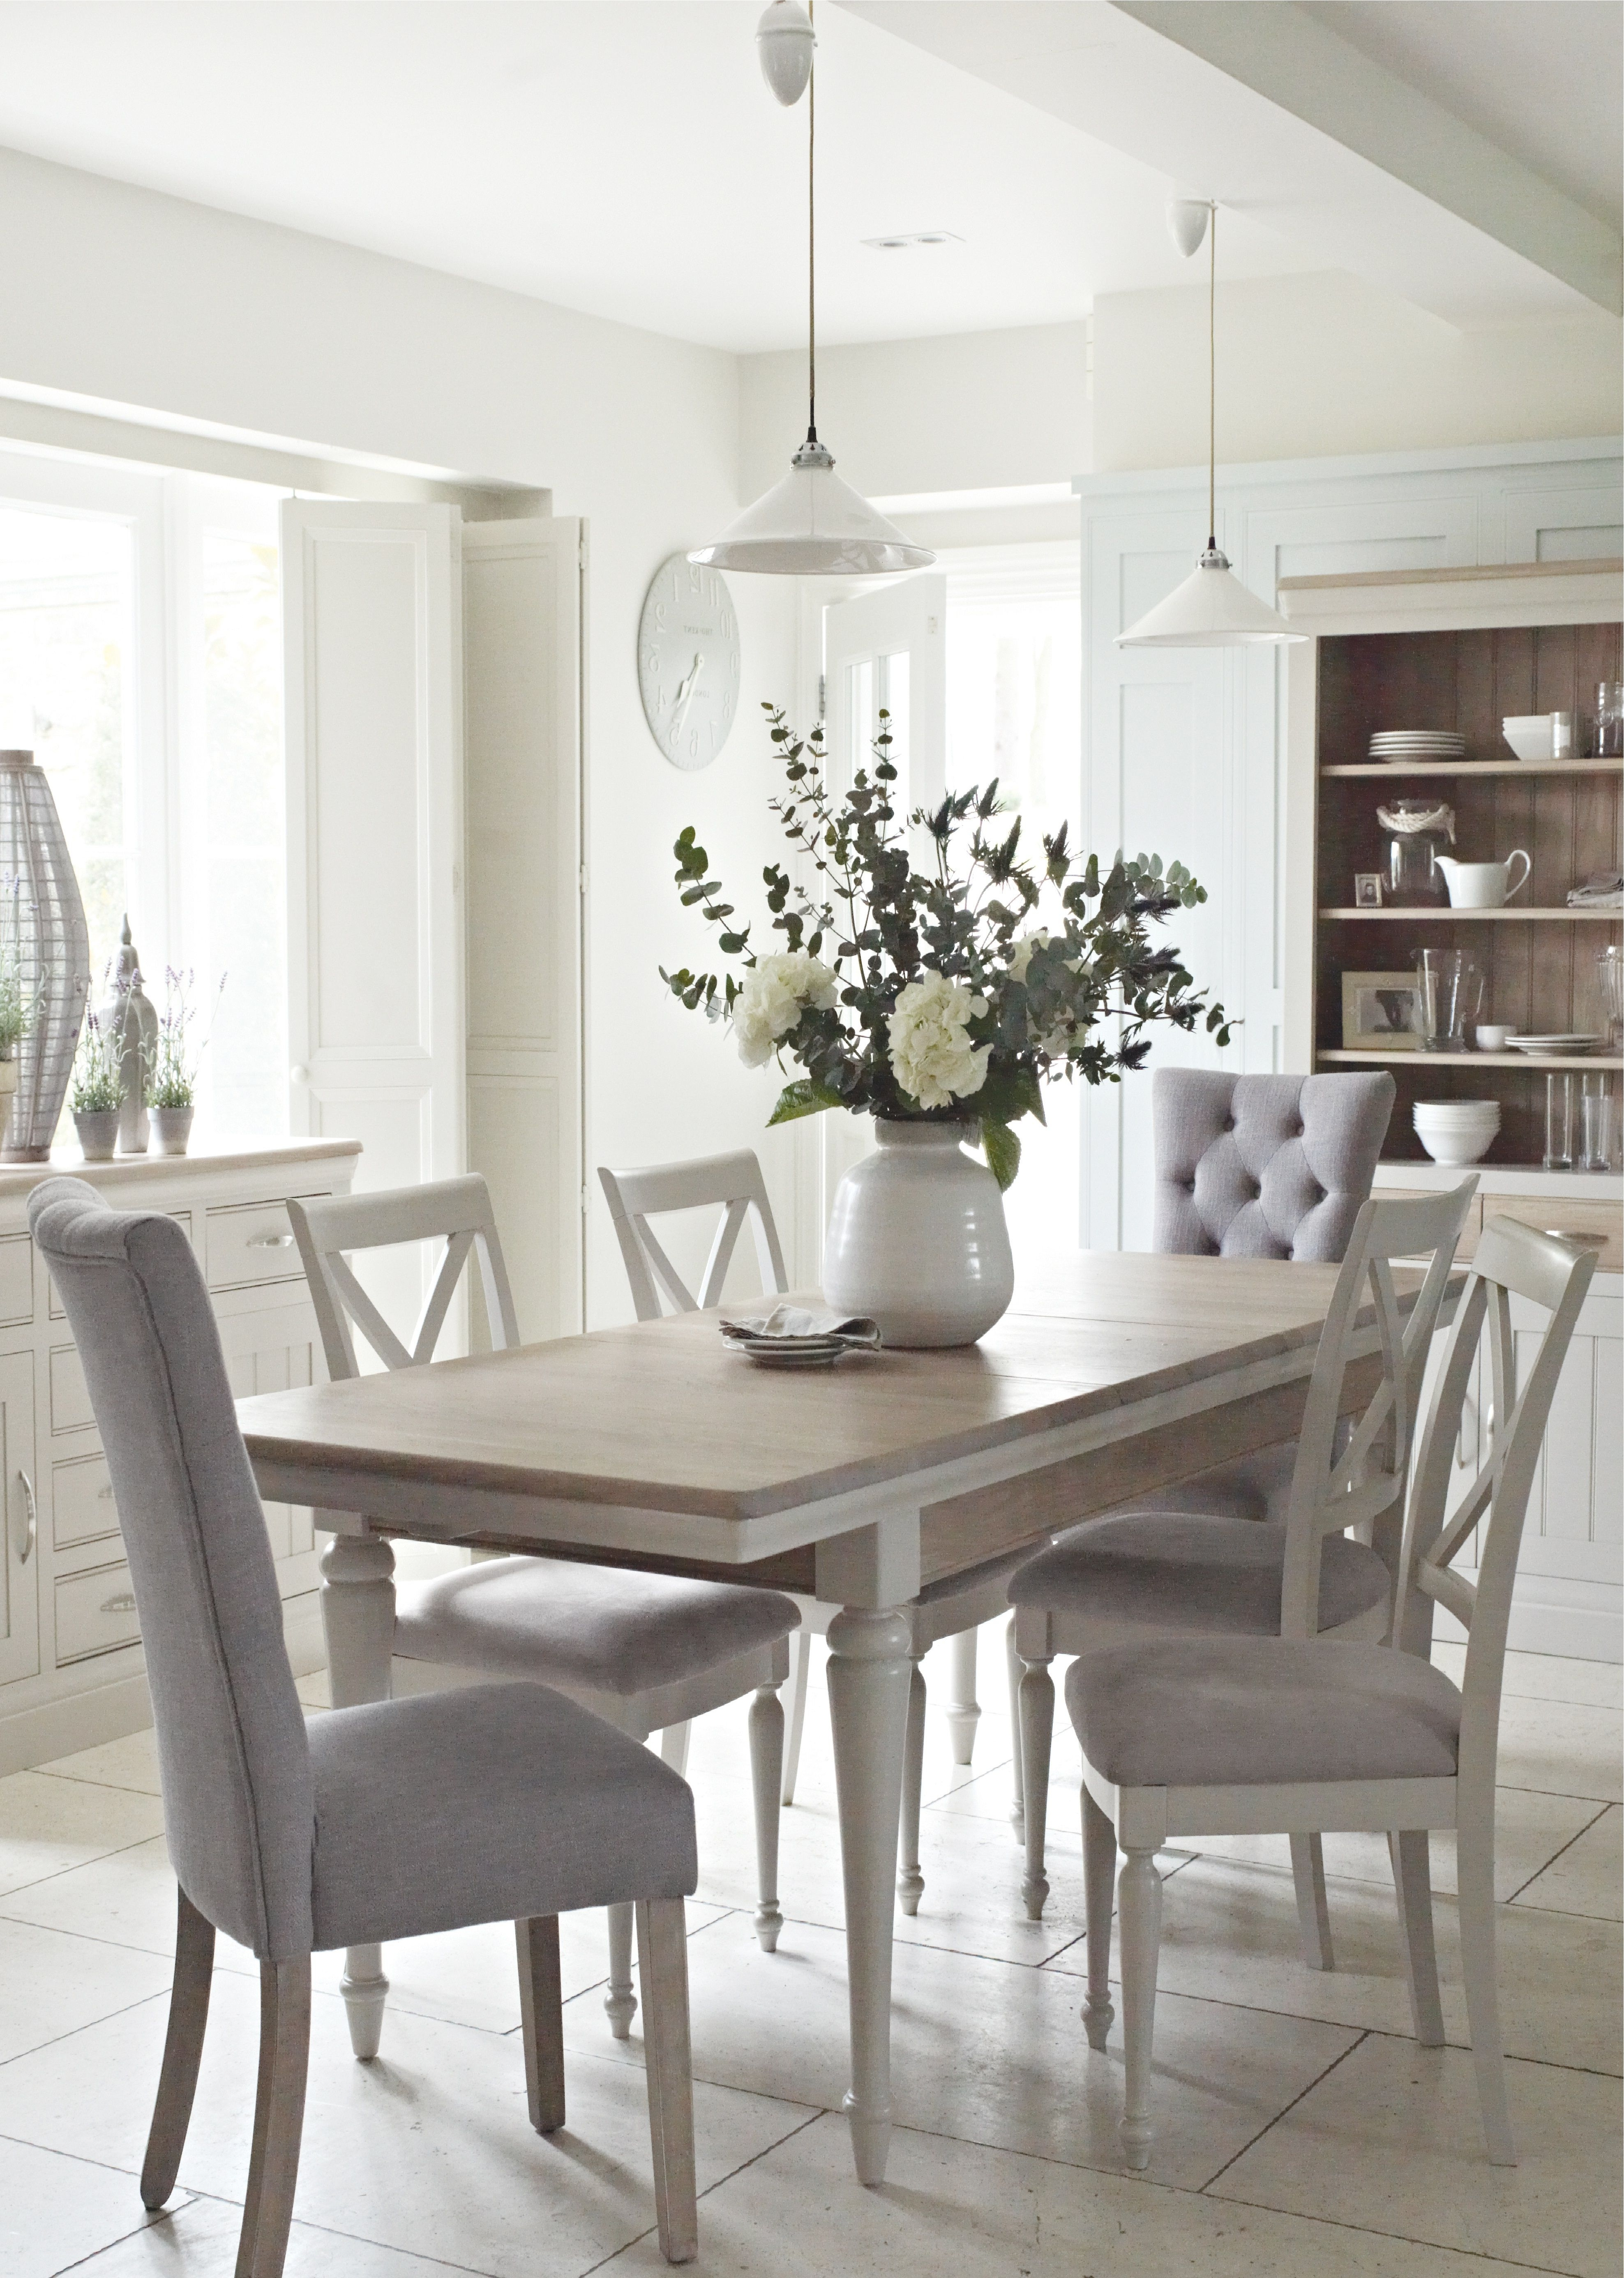 Well Liked The Classic Bambury Dining Range Just Oozes Country Chic (View 25 of 25)